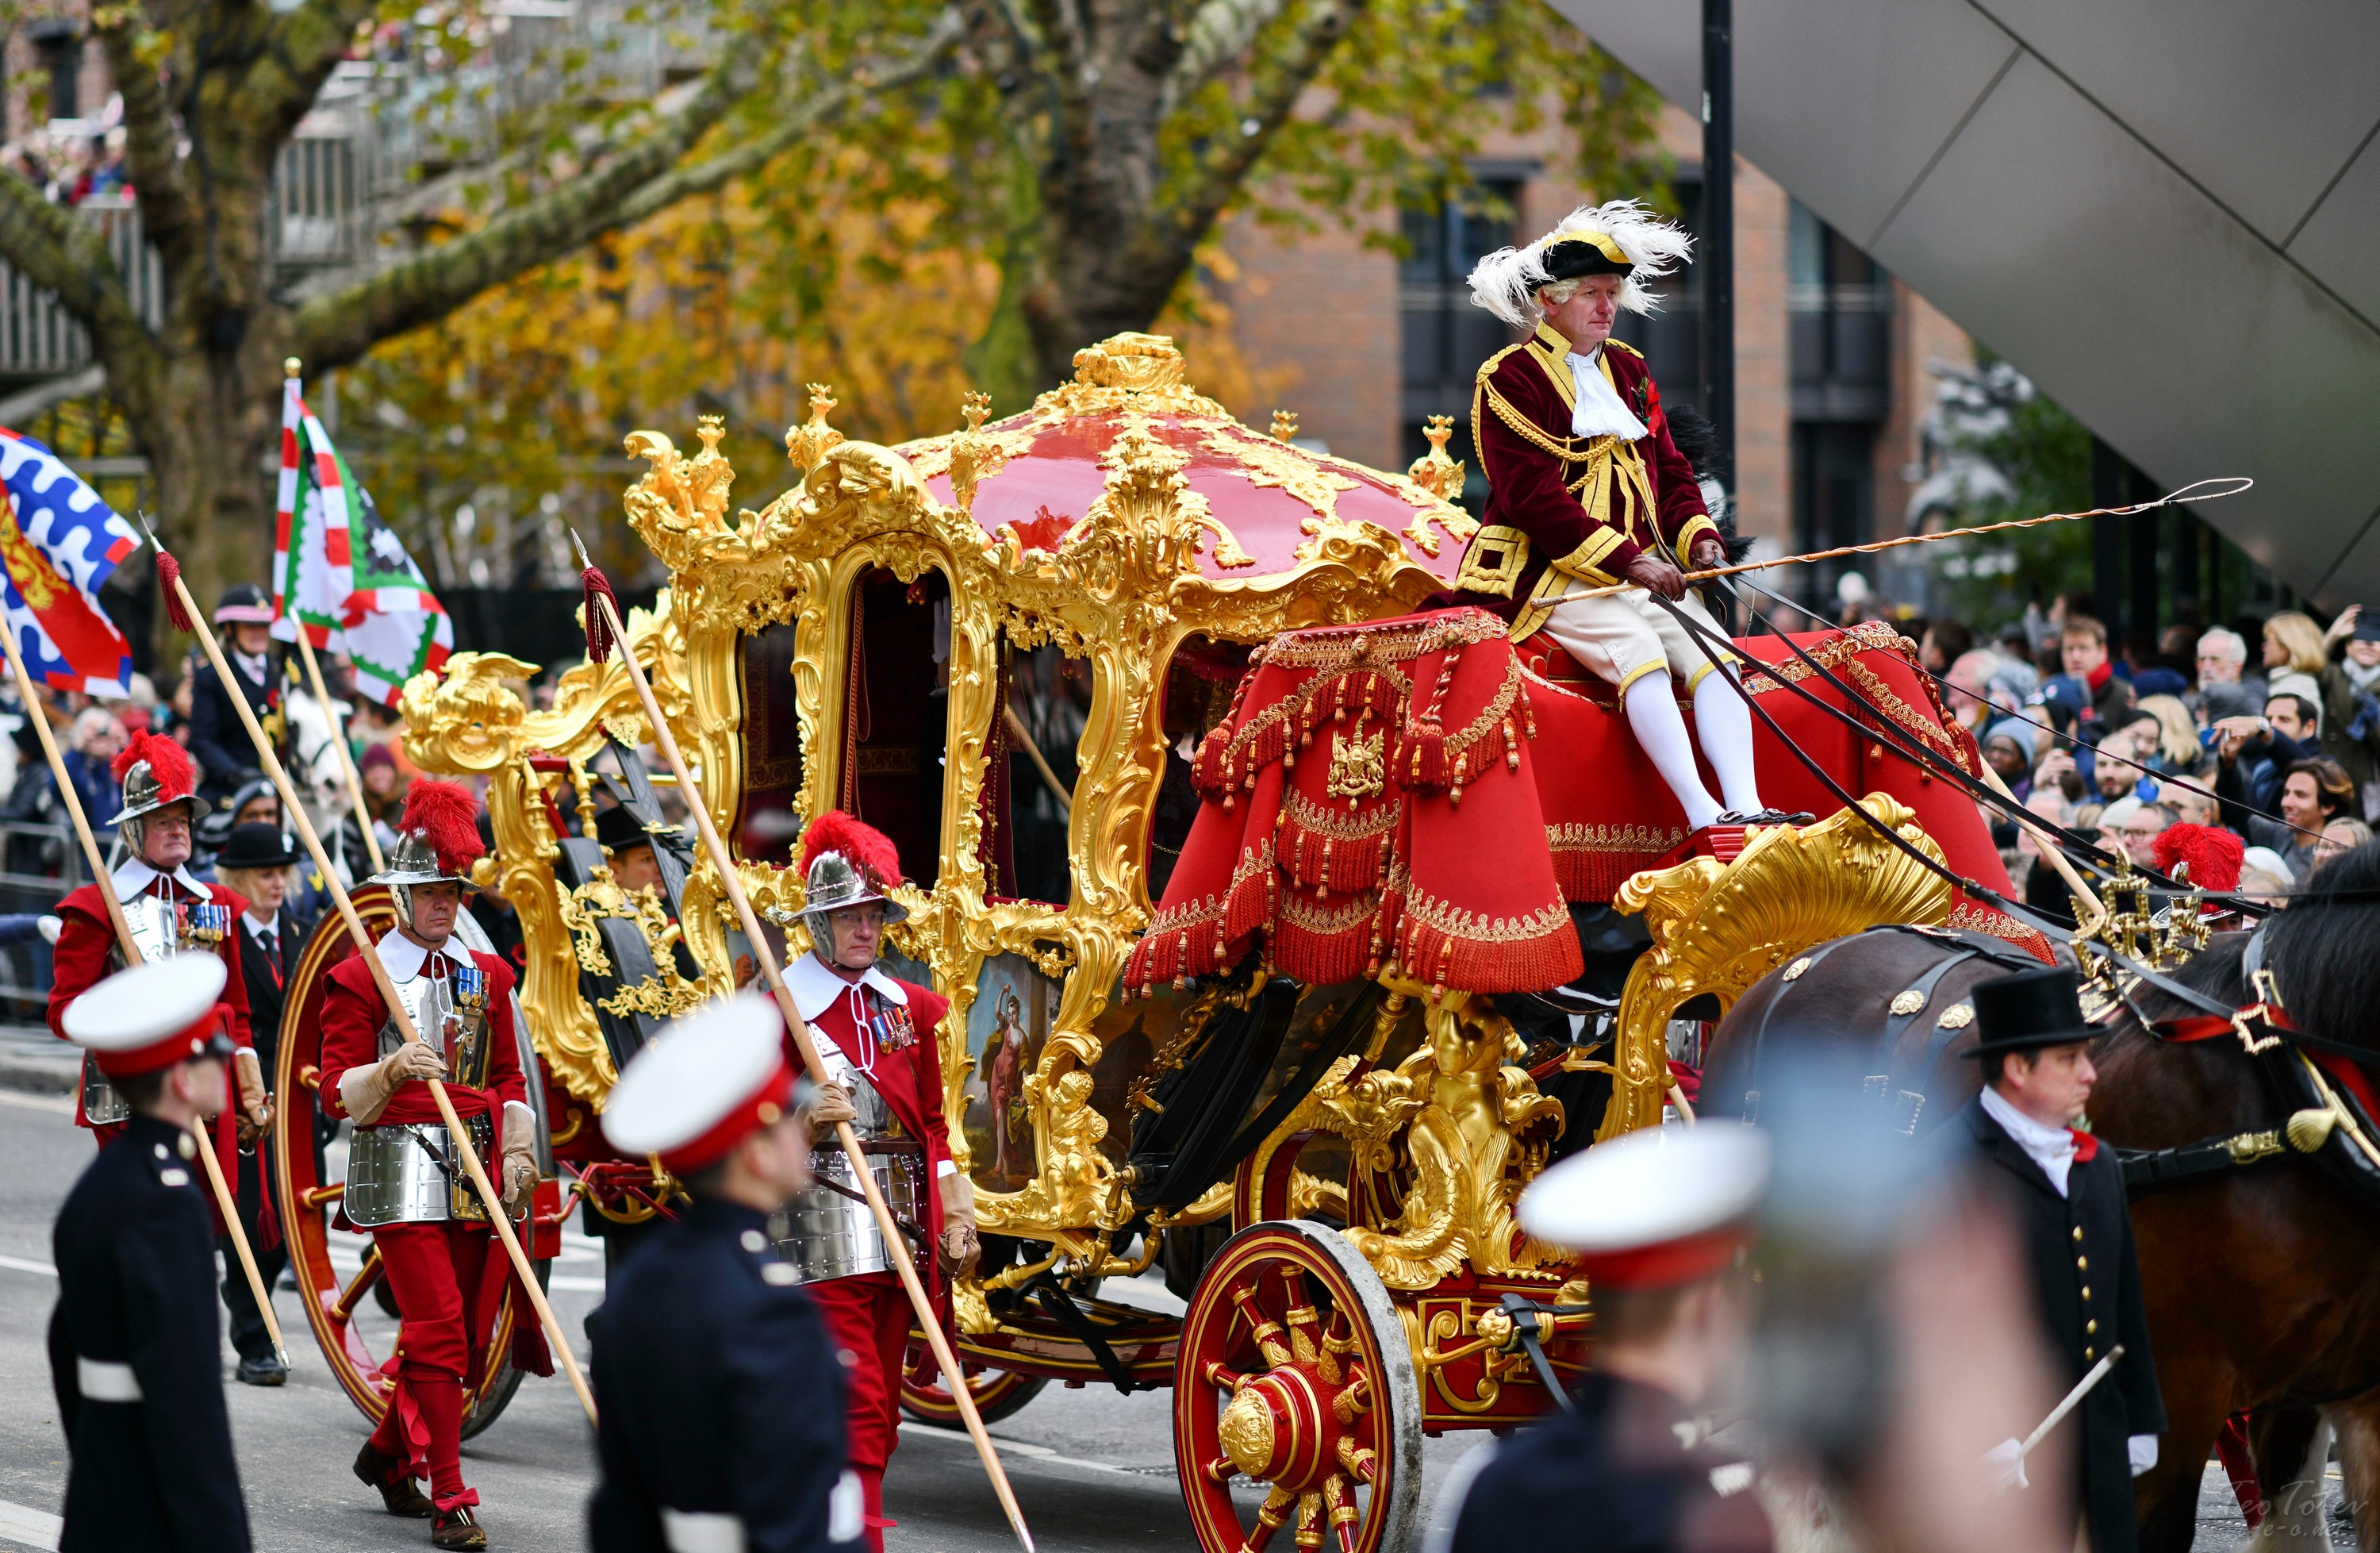 Lord Mayor's Show in the City of London